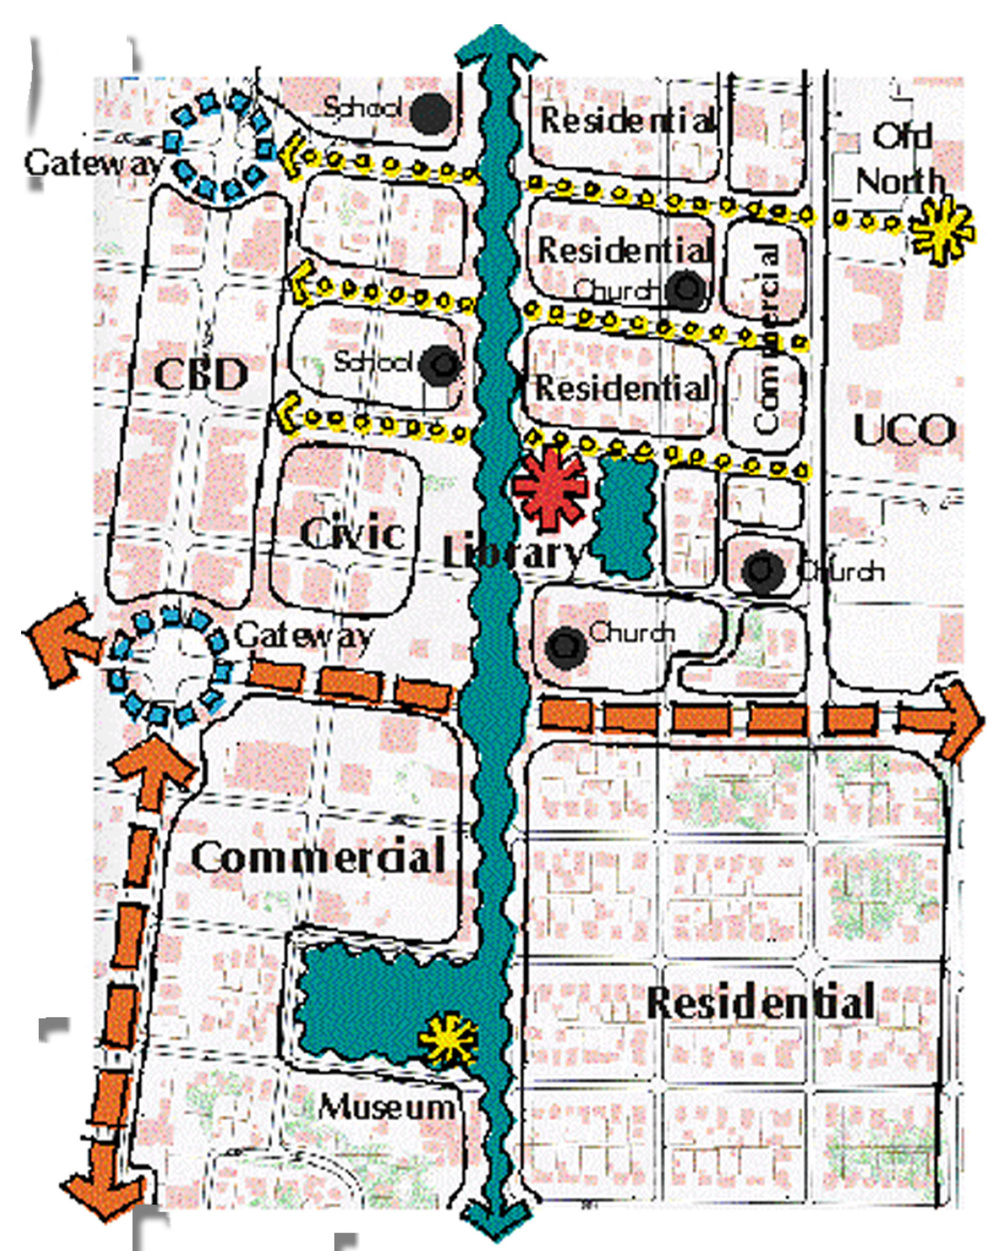 Edmond Downtown Master Plan copy.jpg